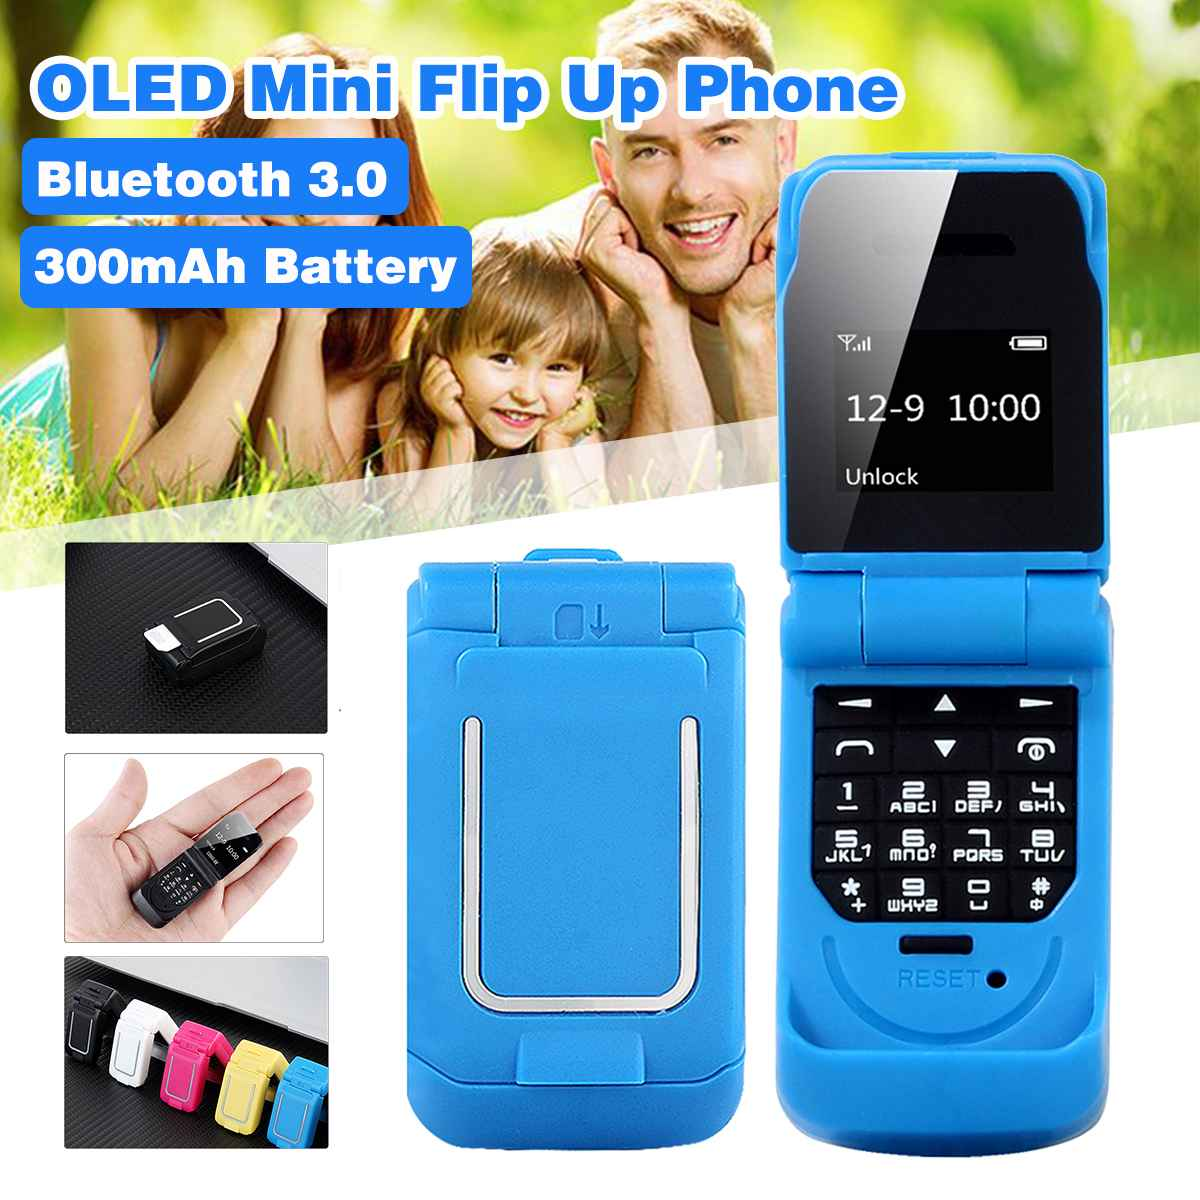 0.66 Inch OLED Screen Bluetooth 3.0 Mini Flip Up Mobile Phone Mini Phone SIM Card Smallest Cell Phone For Kids Toy Walkie Talkie